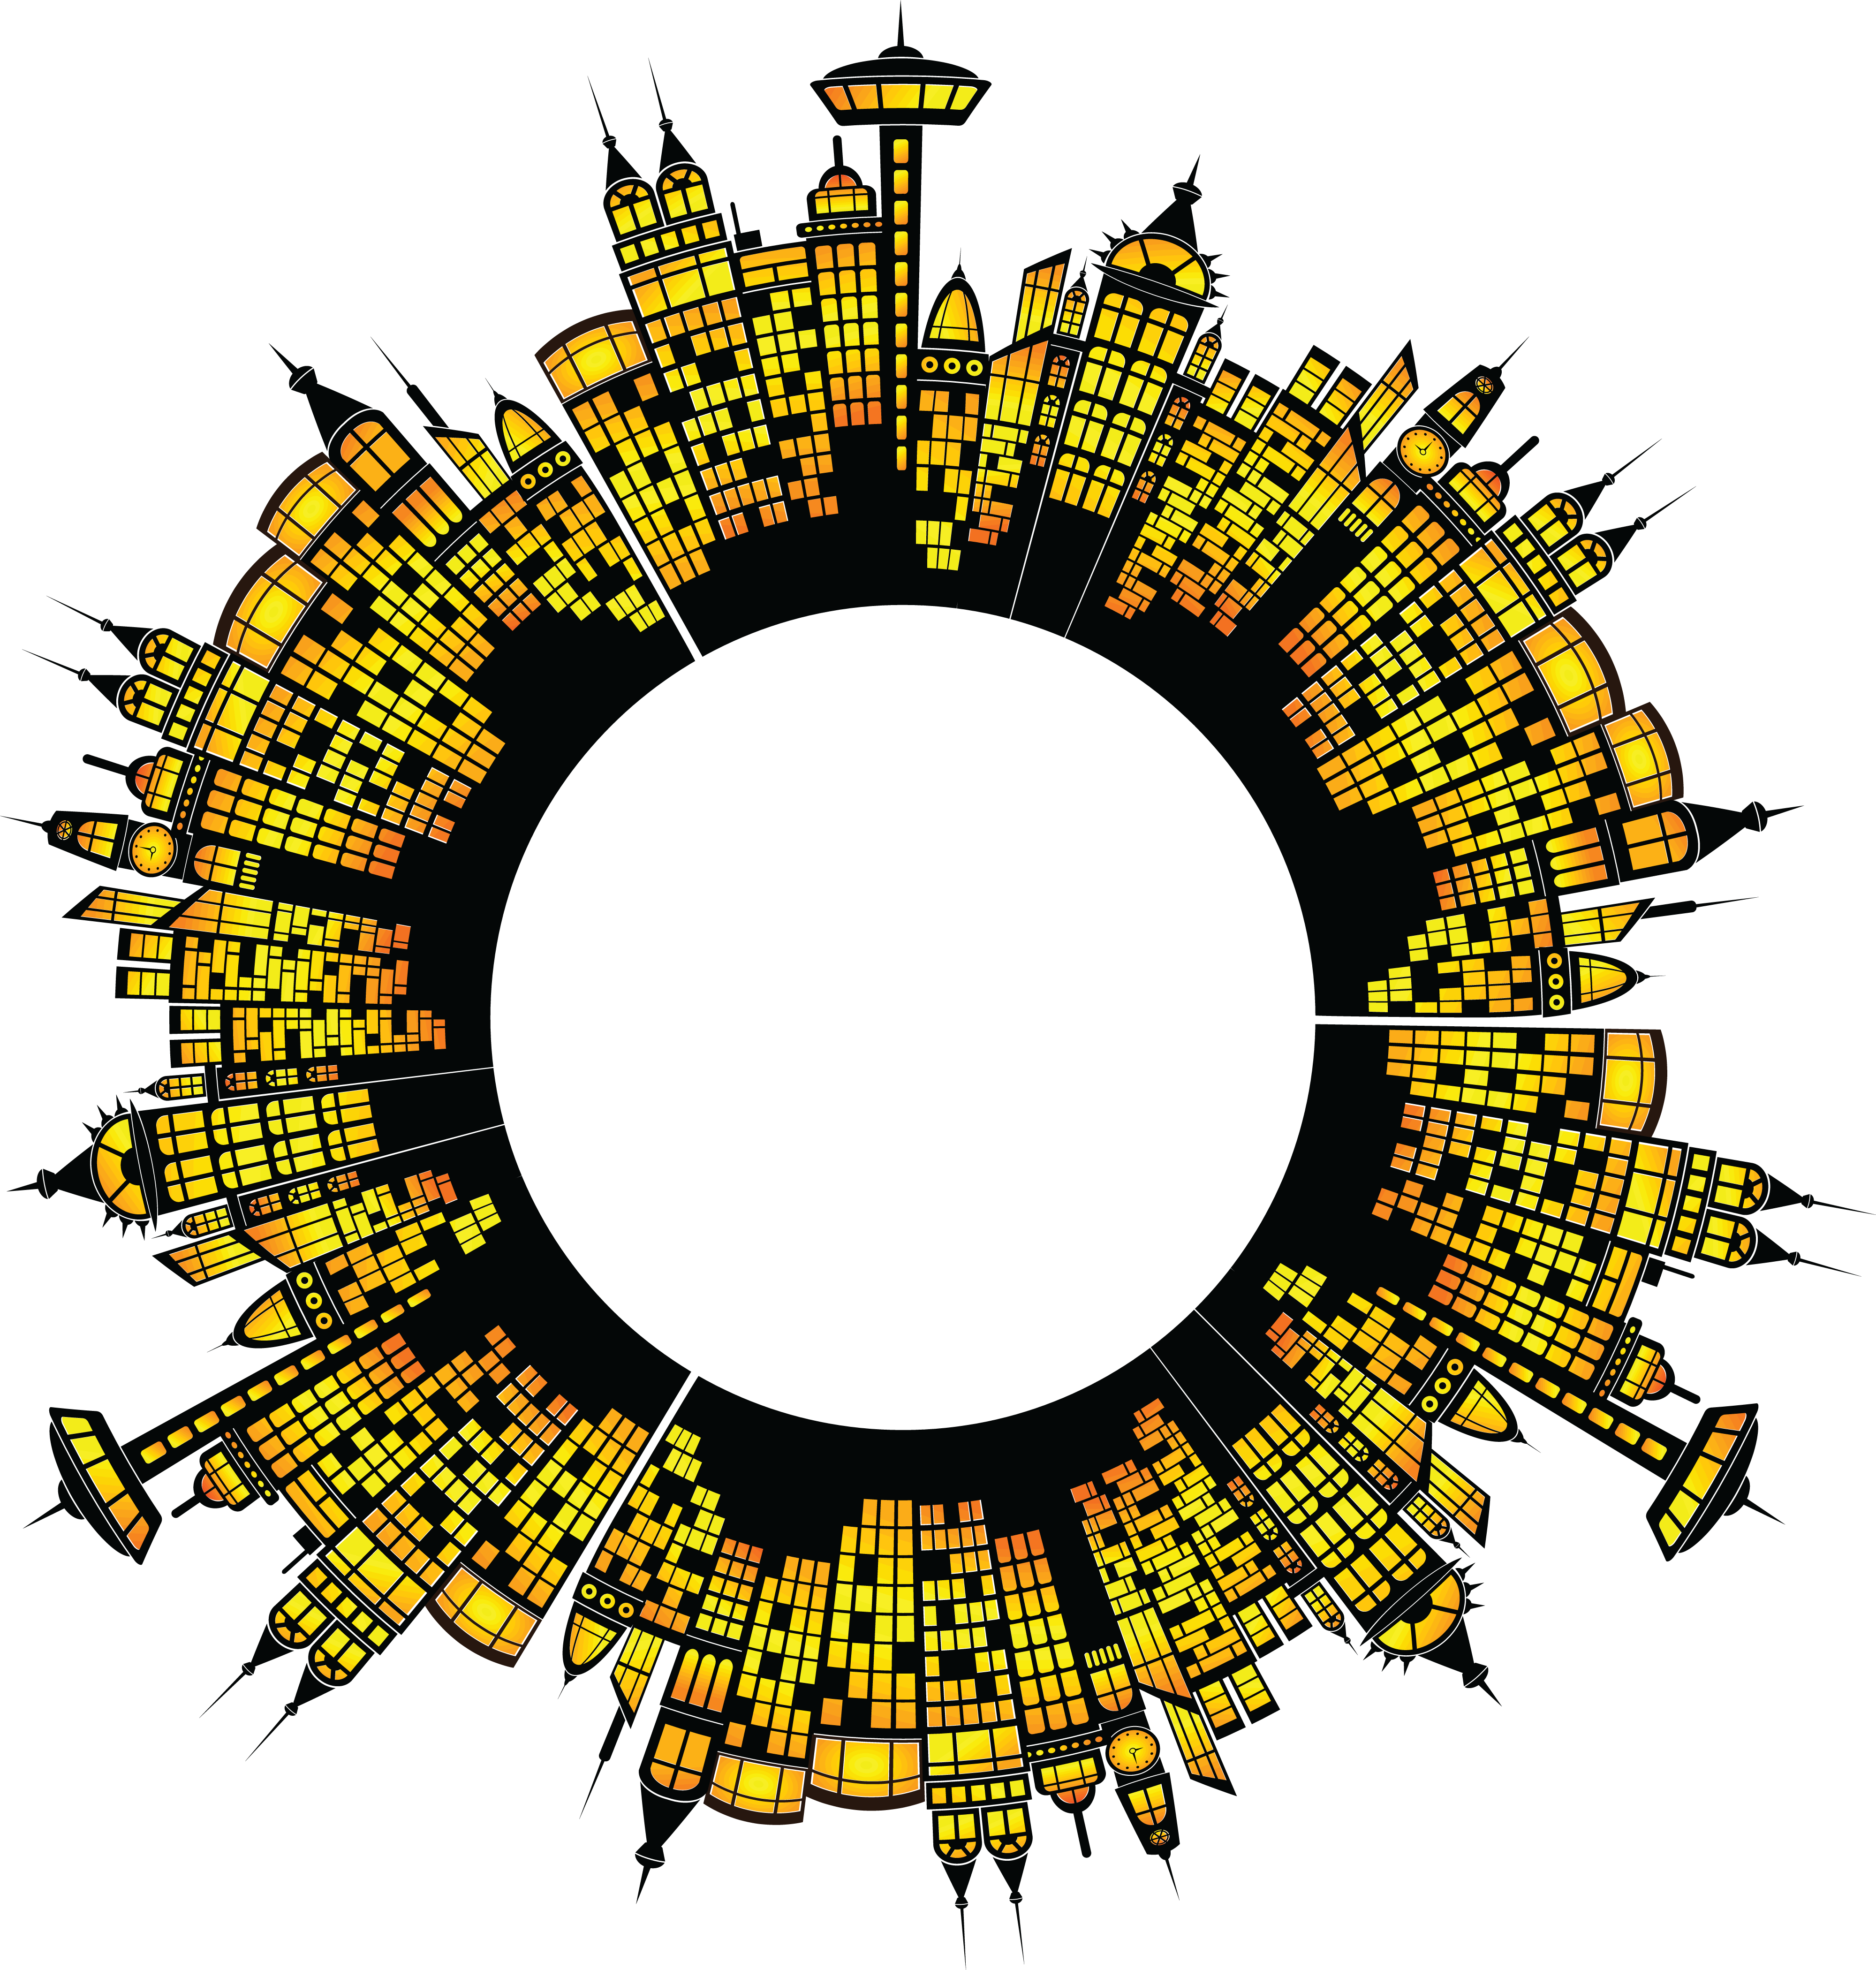 Free Clipart of a round frame of Glowing City Buildings